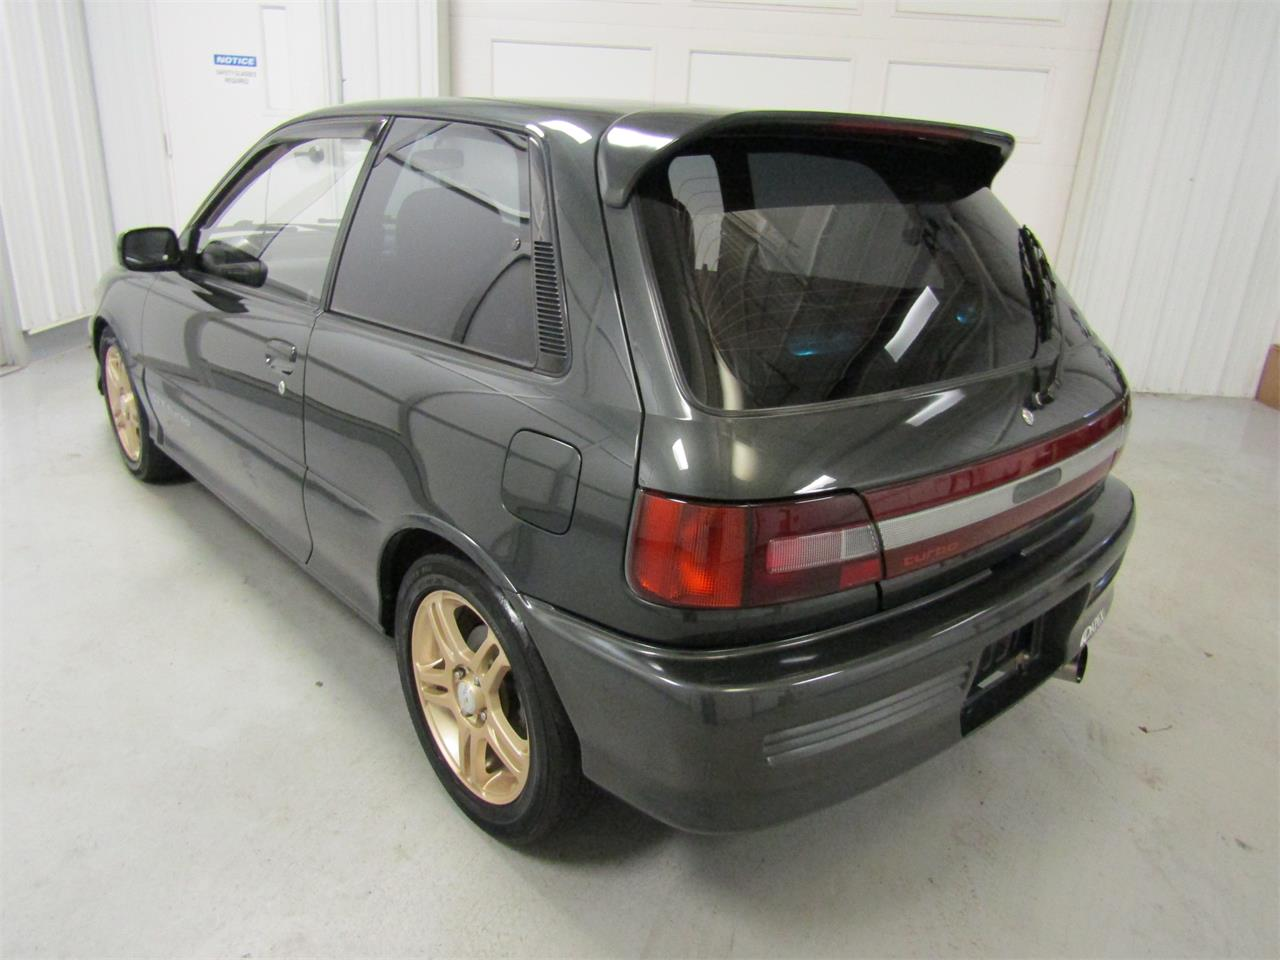 Large Picture of 1990 Starlet - $10,900.00 Offered by Duncan Imports & Classic Cars - MO5C